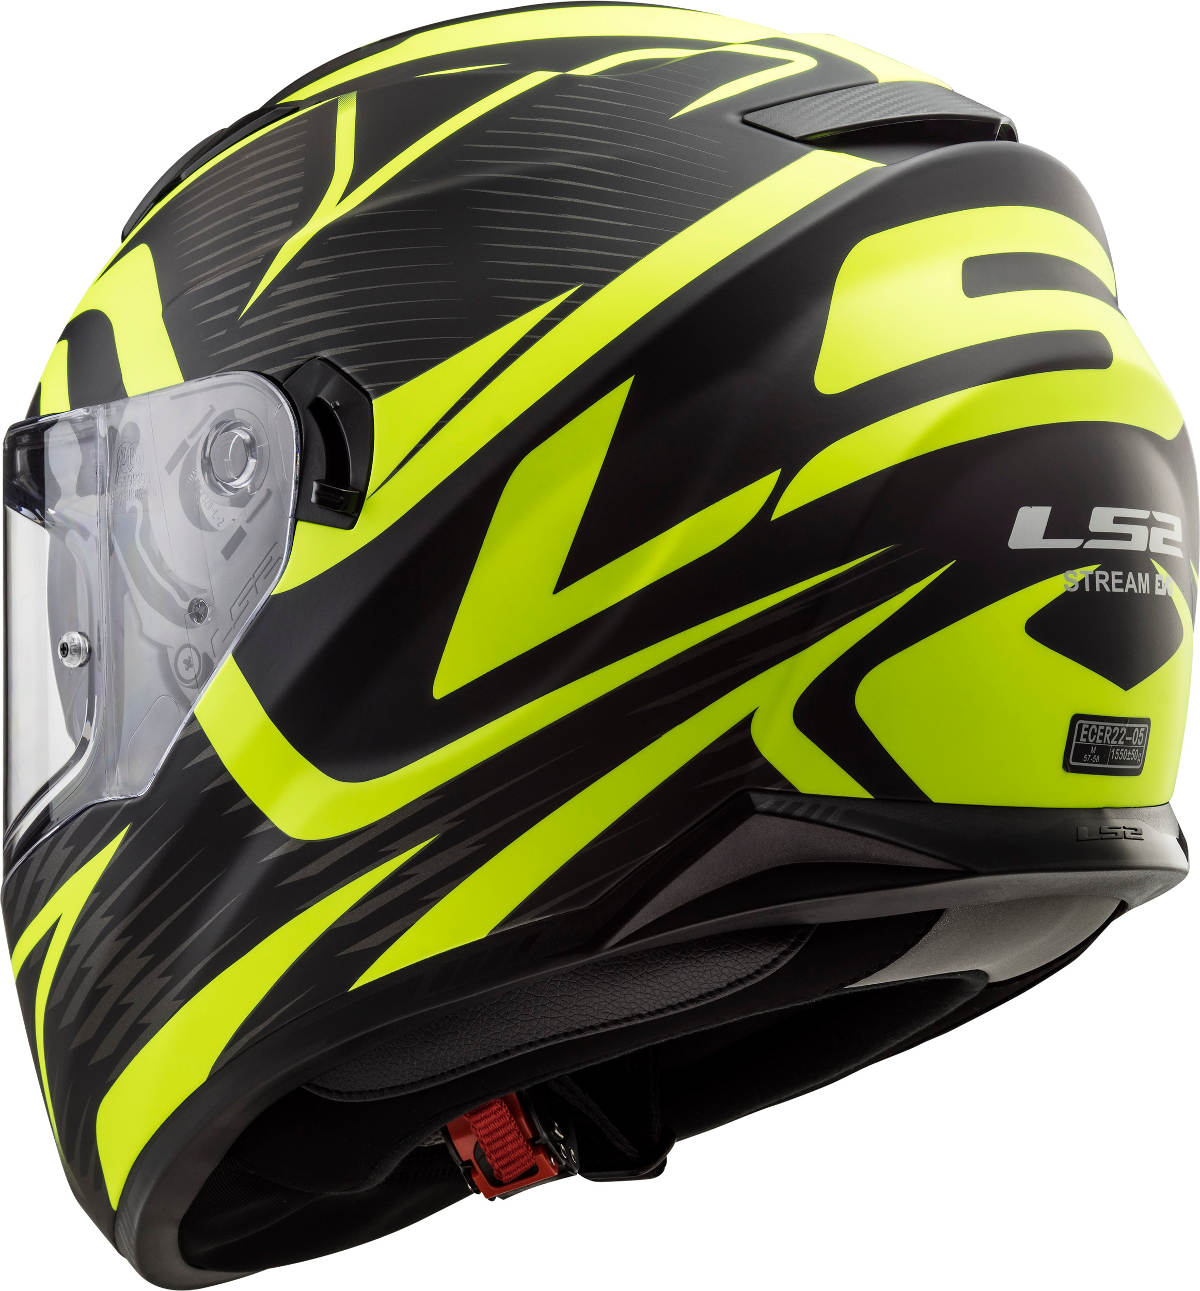 LS2 Stream Evo Helmet Jink Matt Black H-V Yellow Graphics Rear